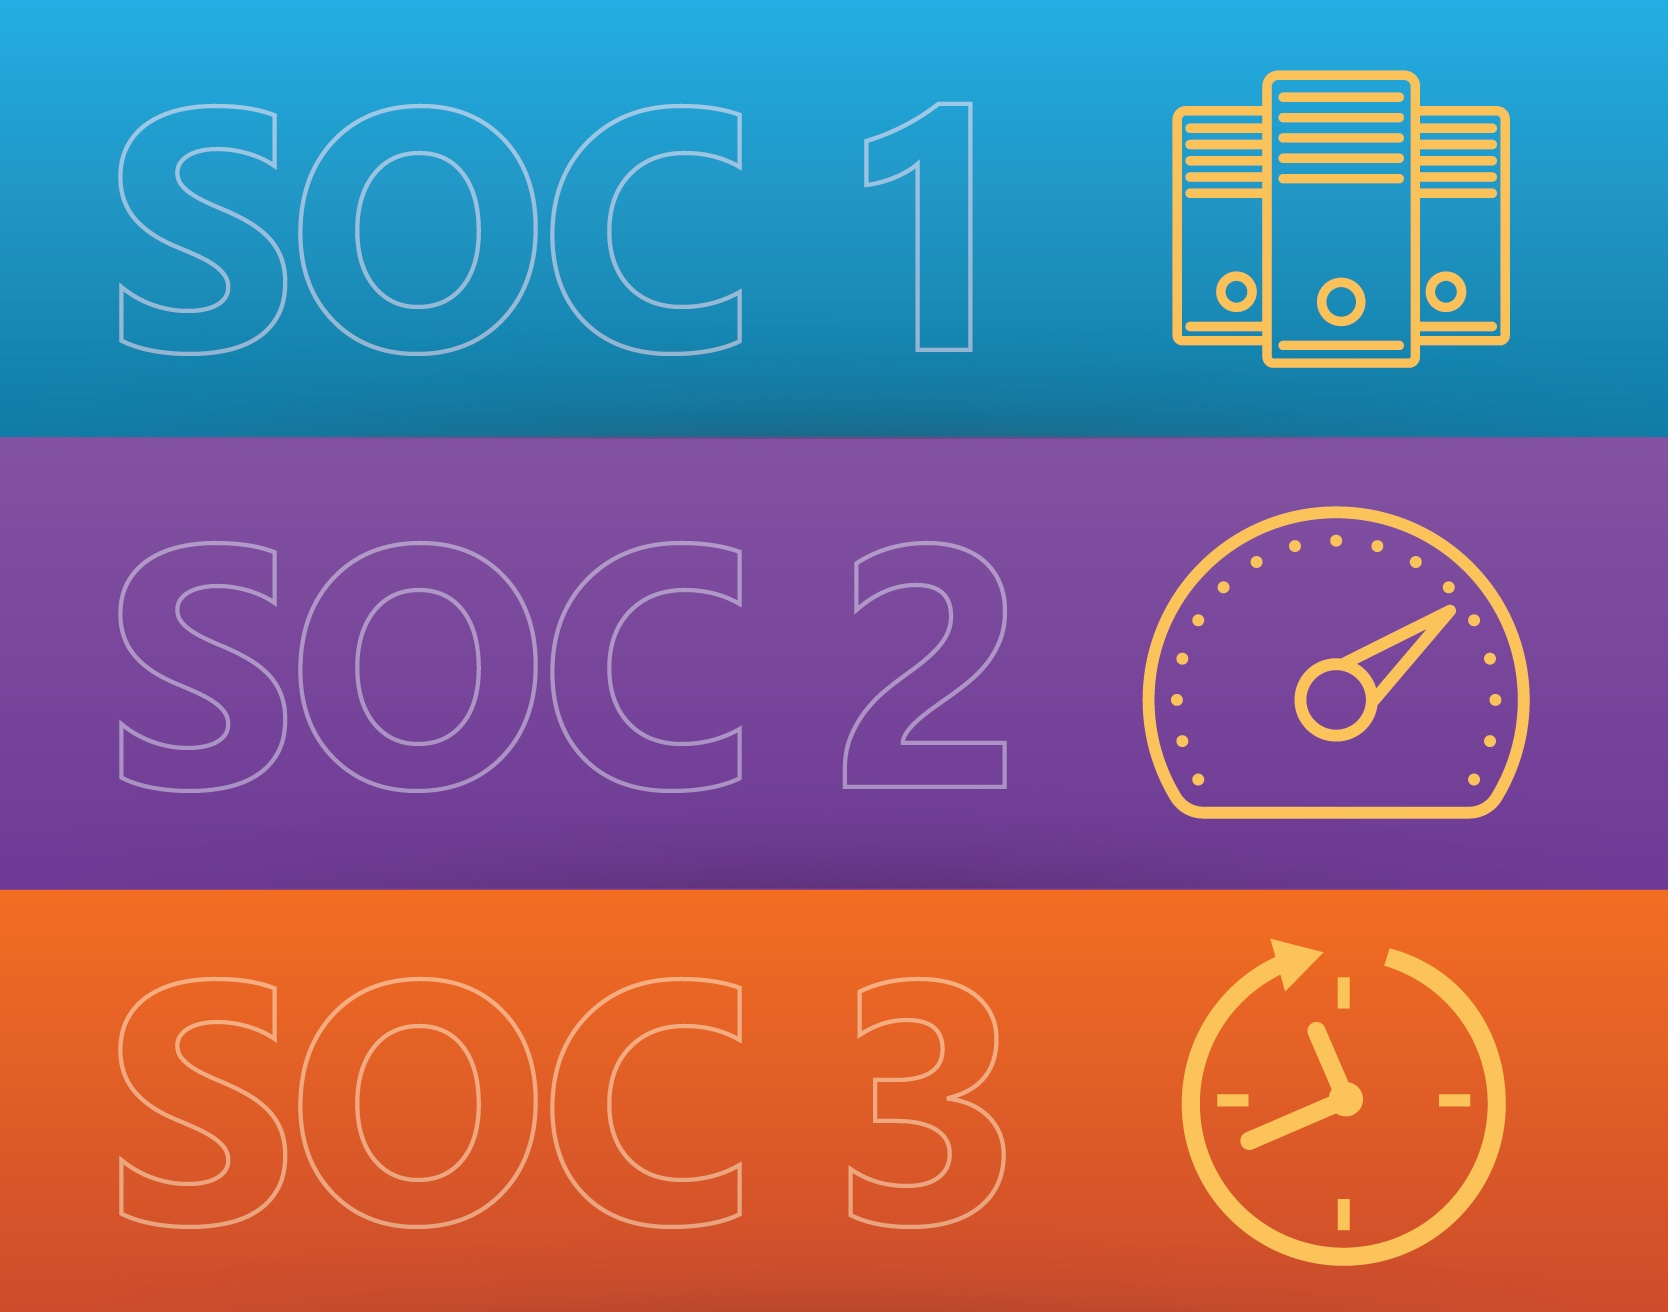 soc 1 soc 2 soc 3 differences